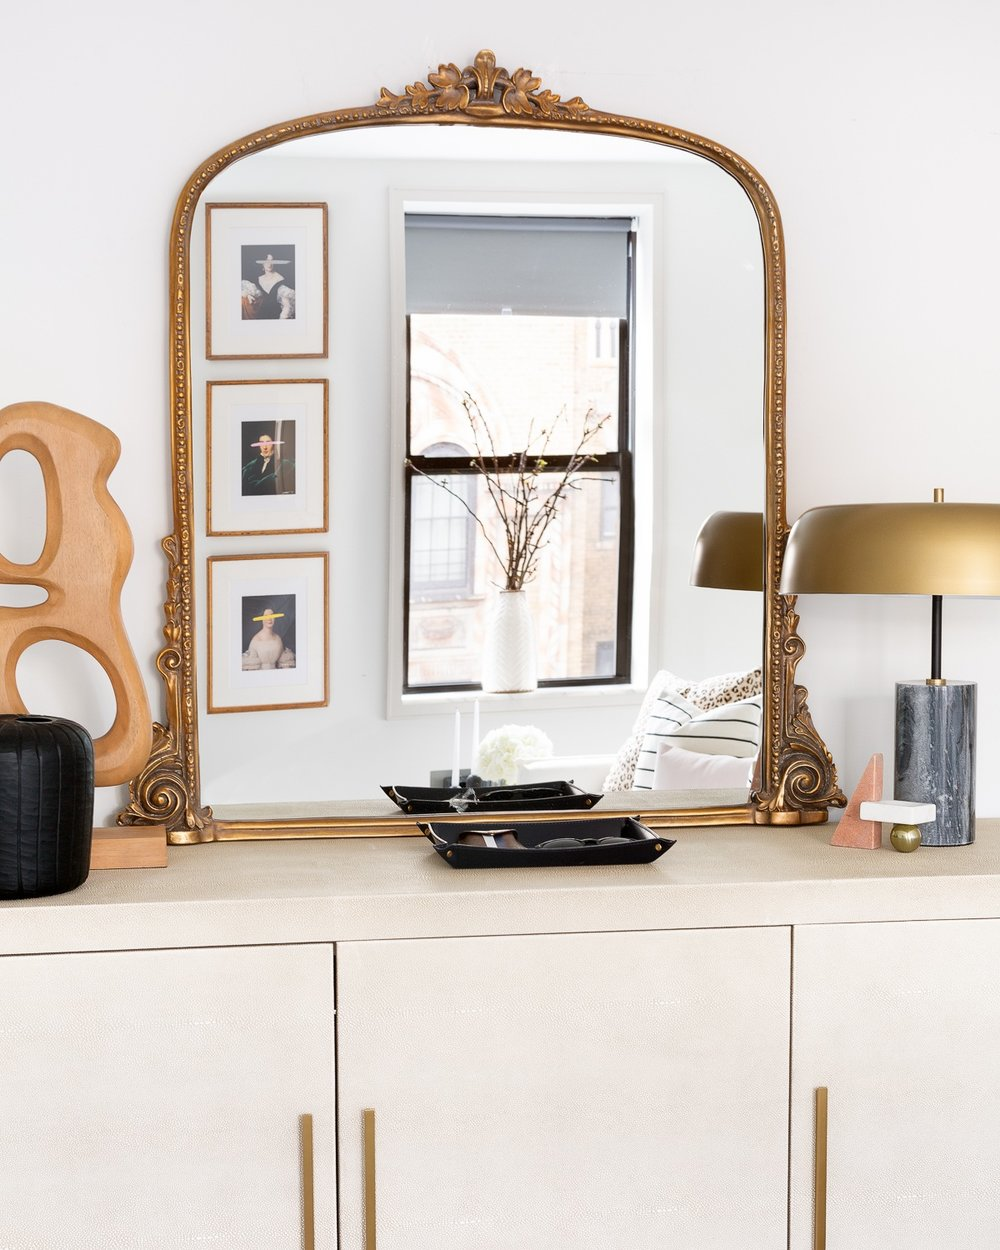 Another moment of luxe style. Sideboard in bone shagreen with brass hardware adorned with a beautiful antique mirror atop reflecting that beautiful art and those windows…. you know I love them by now!! The assymetric lamp with a marble base and brass shade adds a modern charisma to it.